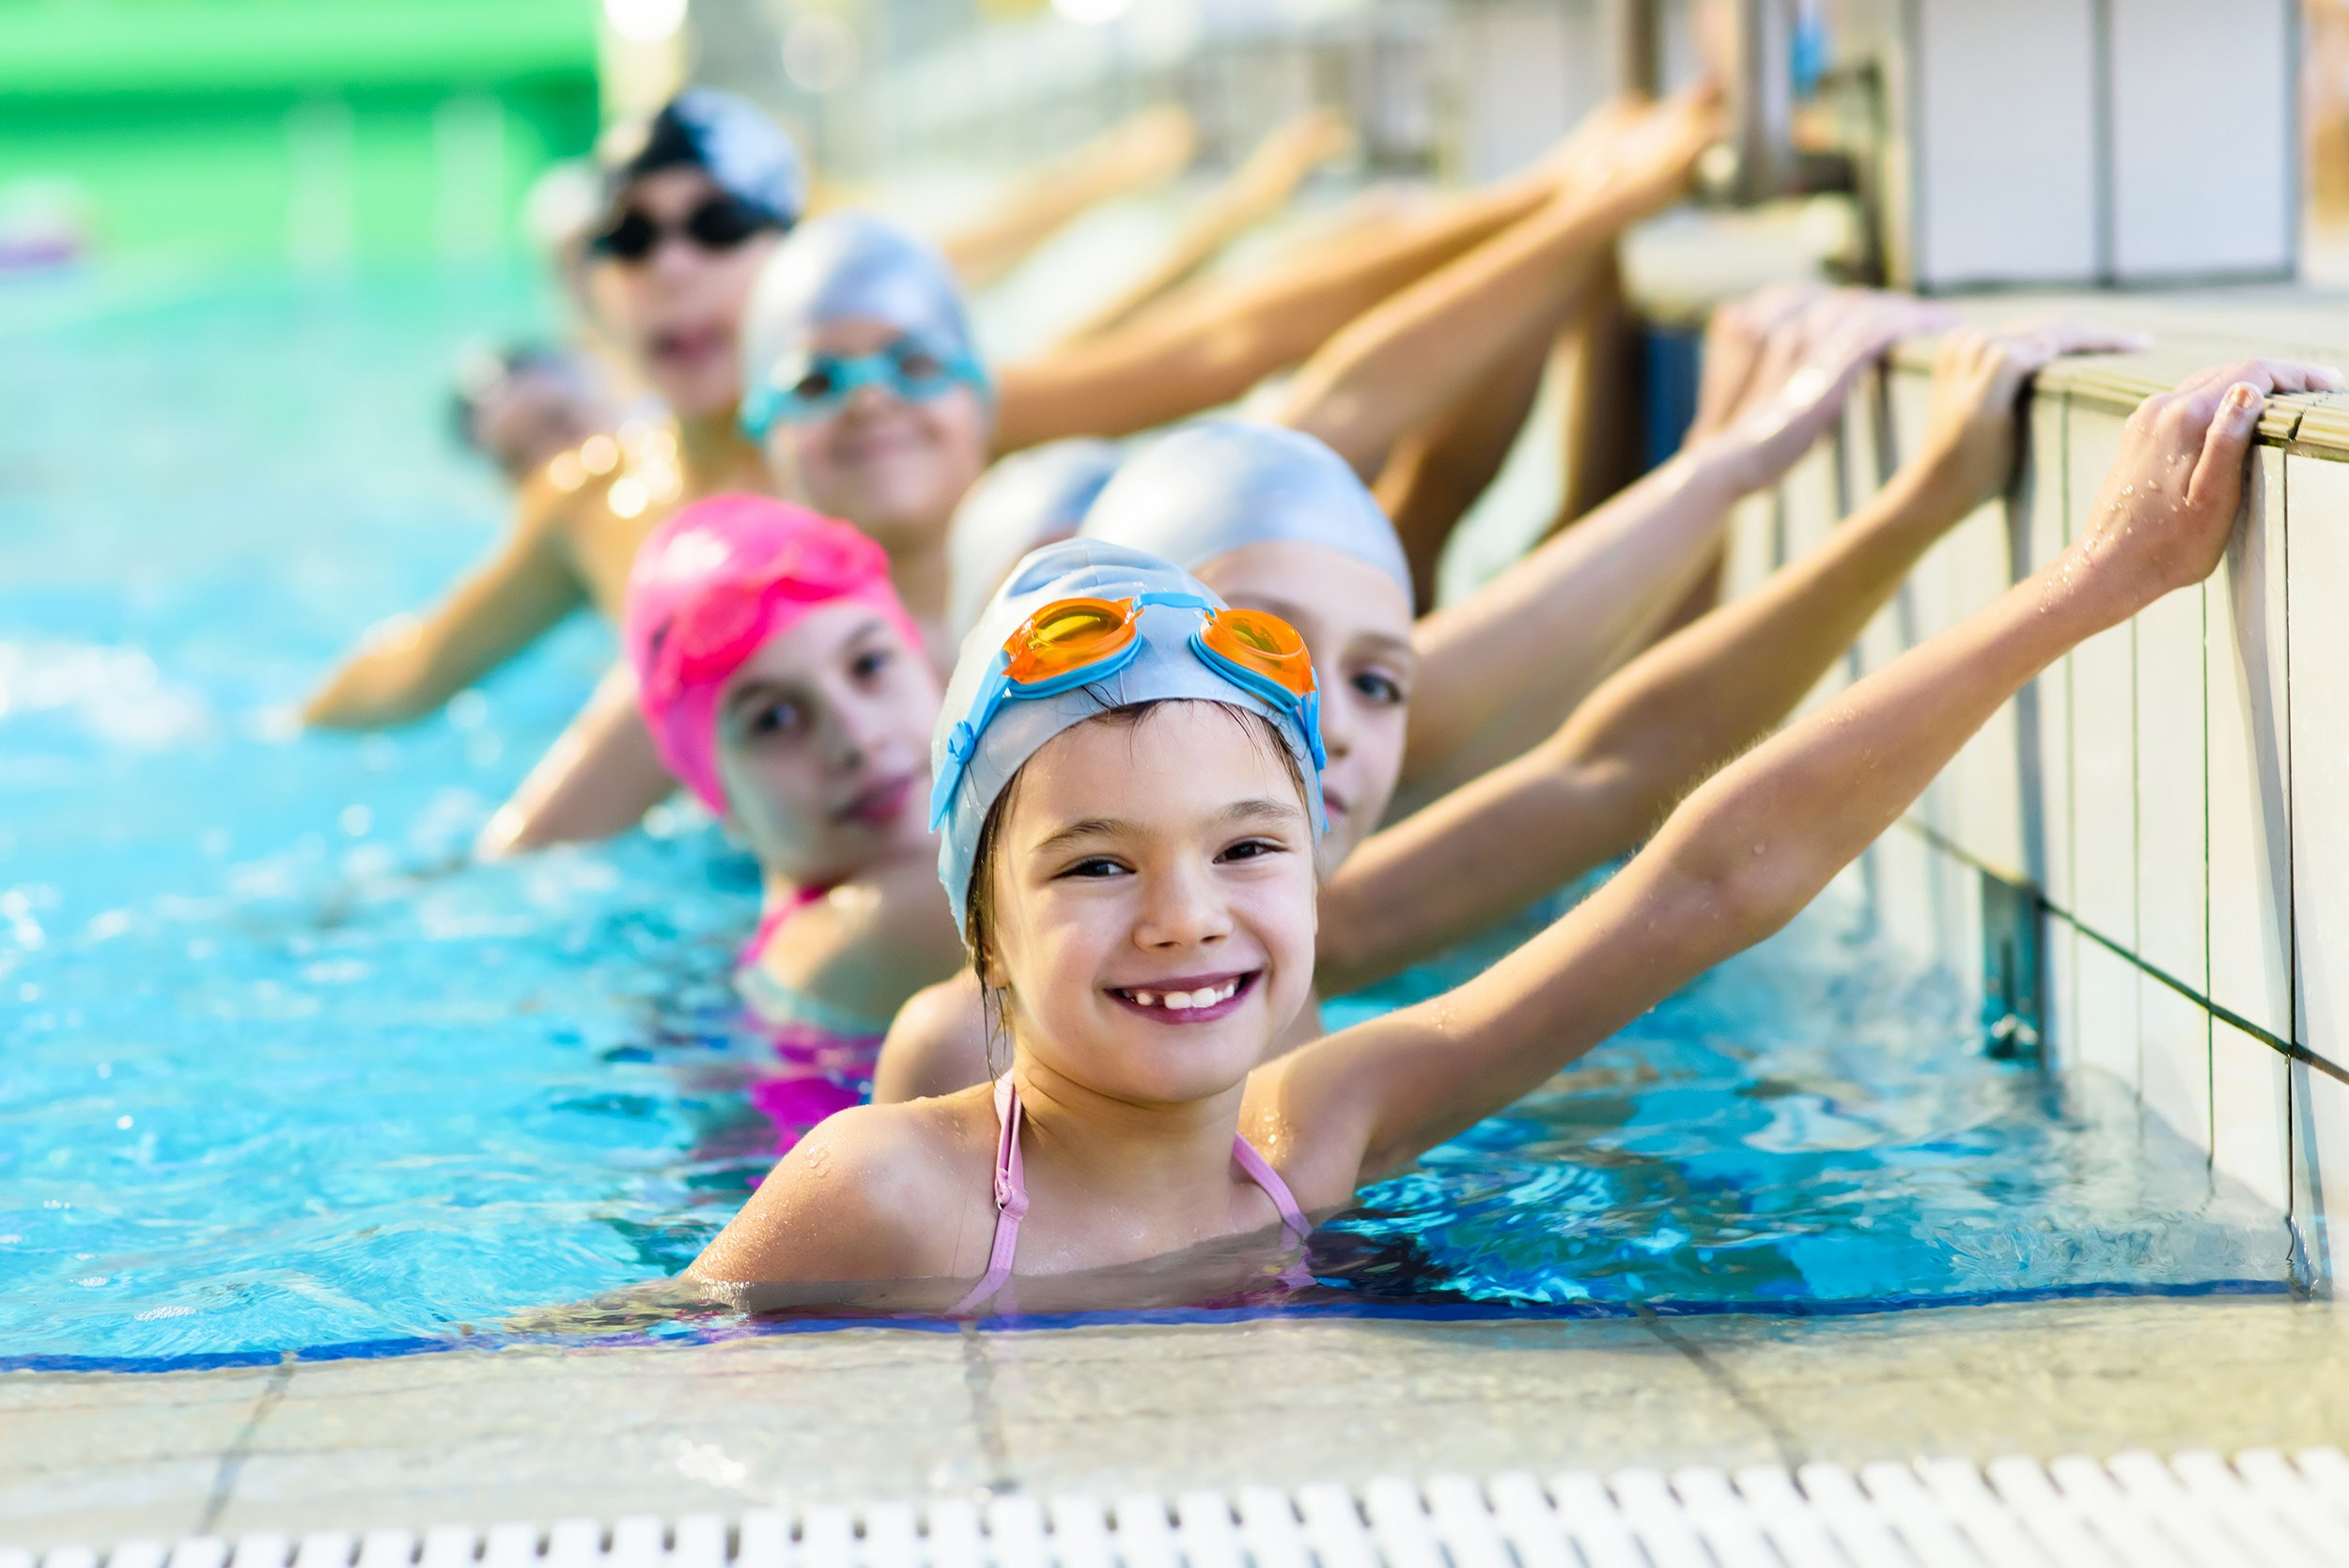 New aquatic and indoor sports centre in Mernda